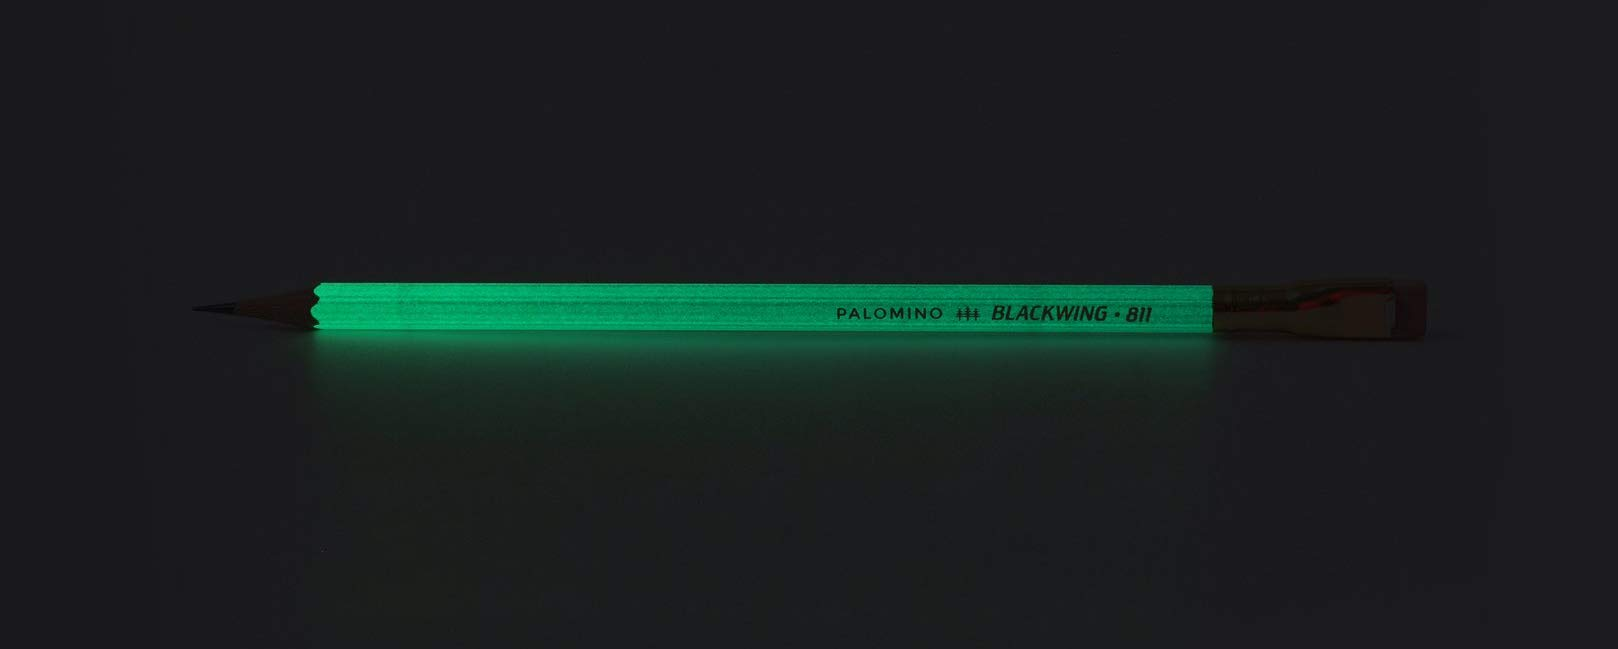 Palomino Blackwing Pencils - Limited Edition Volumes Series Set of 12 Pencils - Volume 811 (Mar2019) by Blackwing (Image #4)